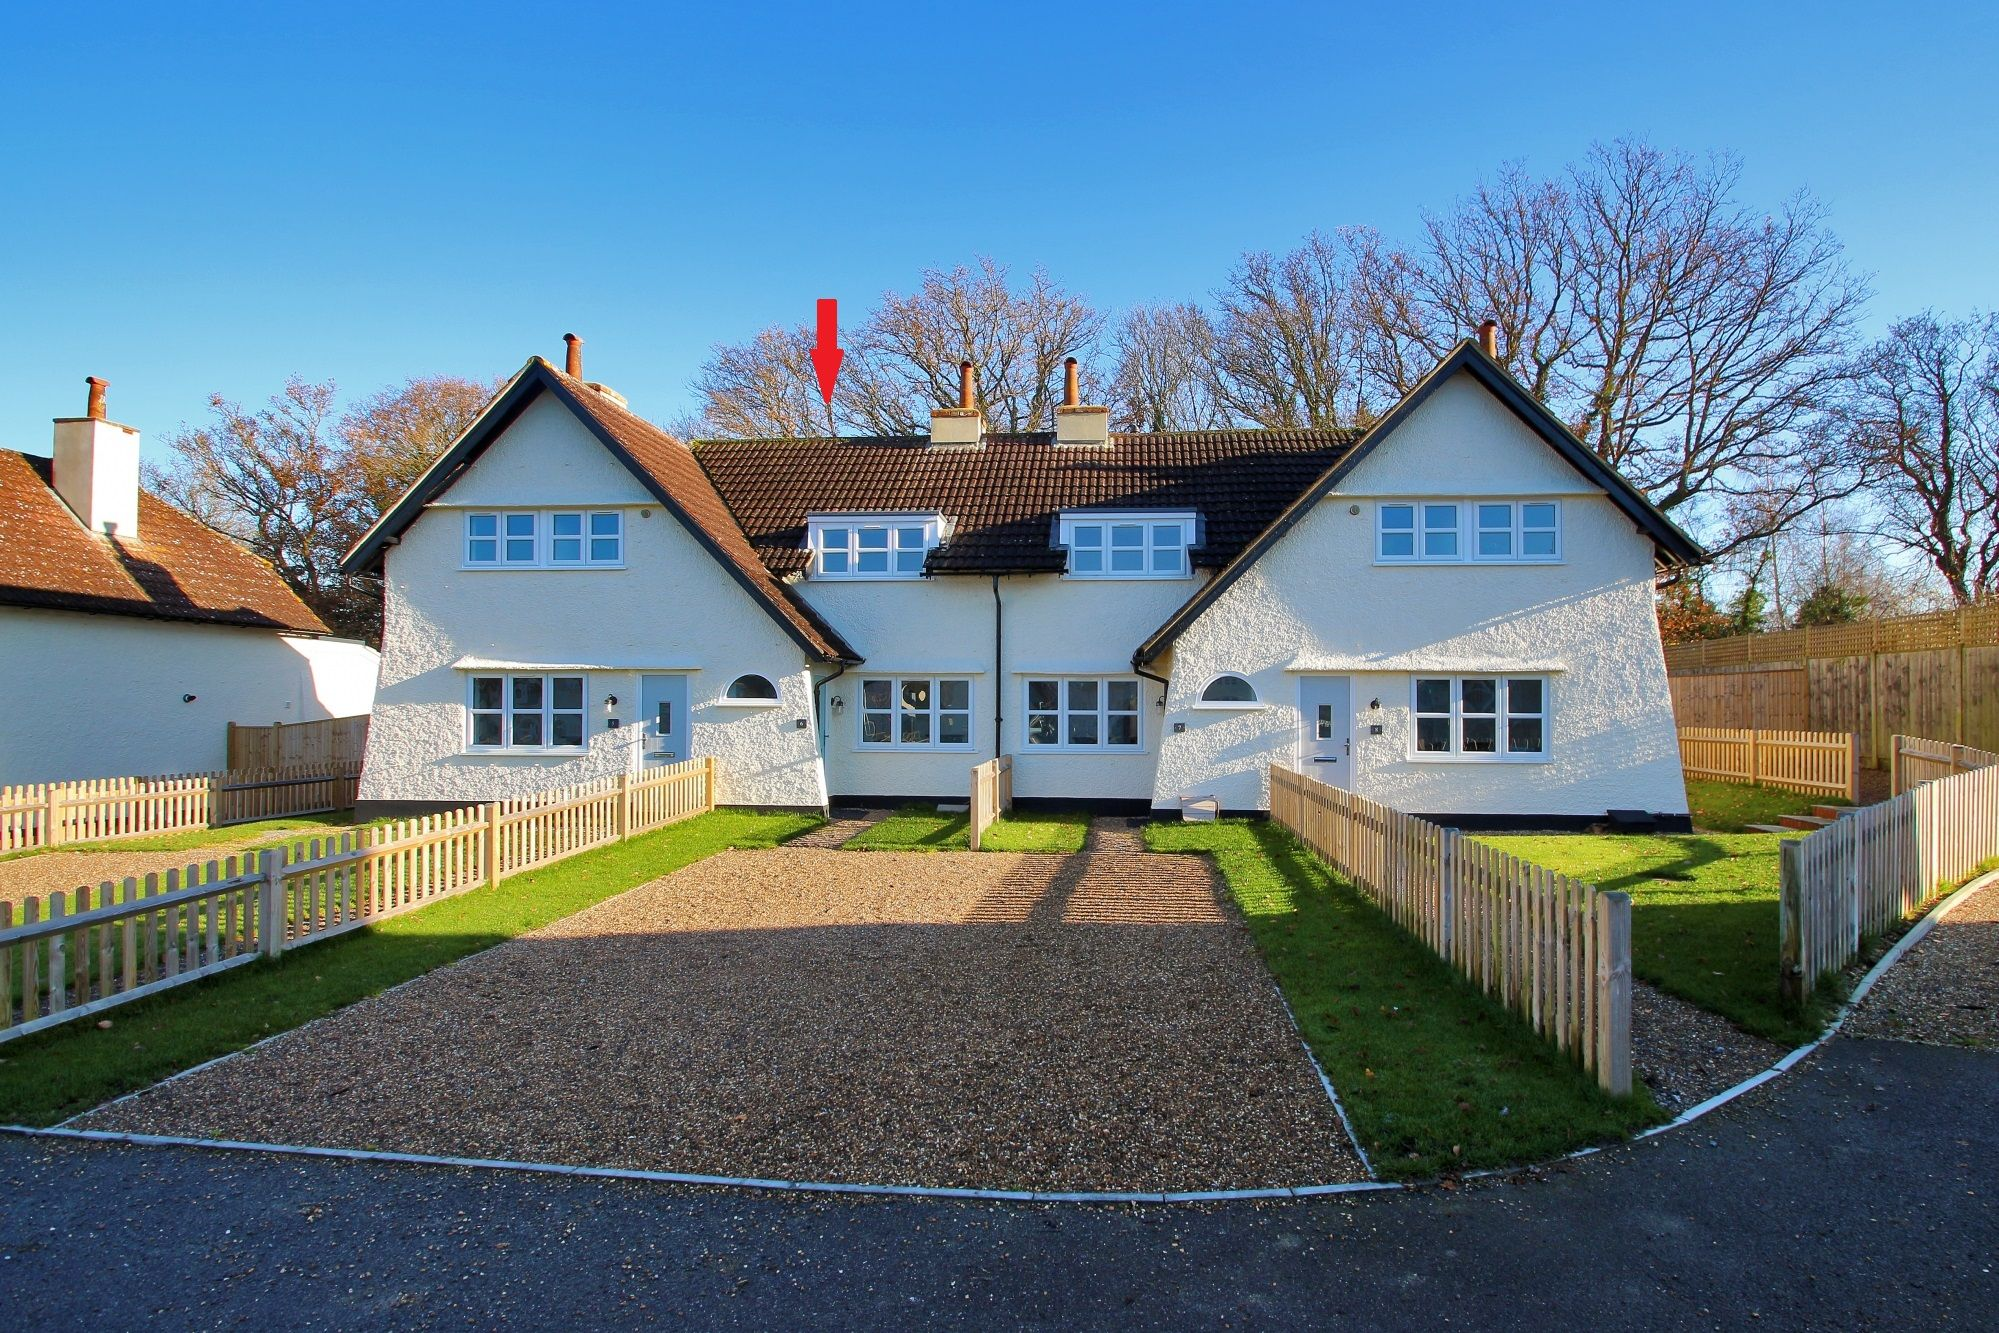 2 bedroom mid terraced house For Sale in Tonbridge - Photograph 1